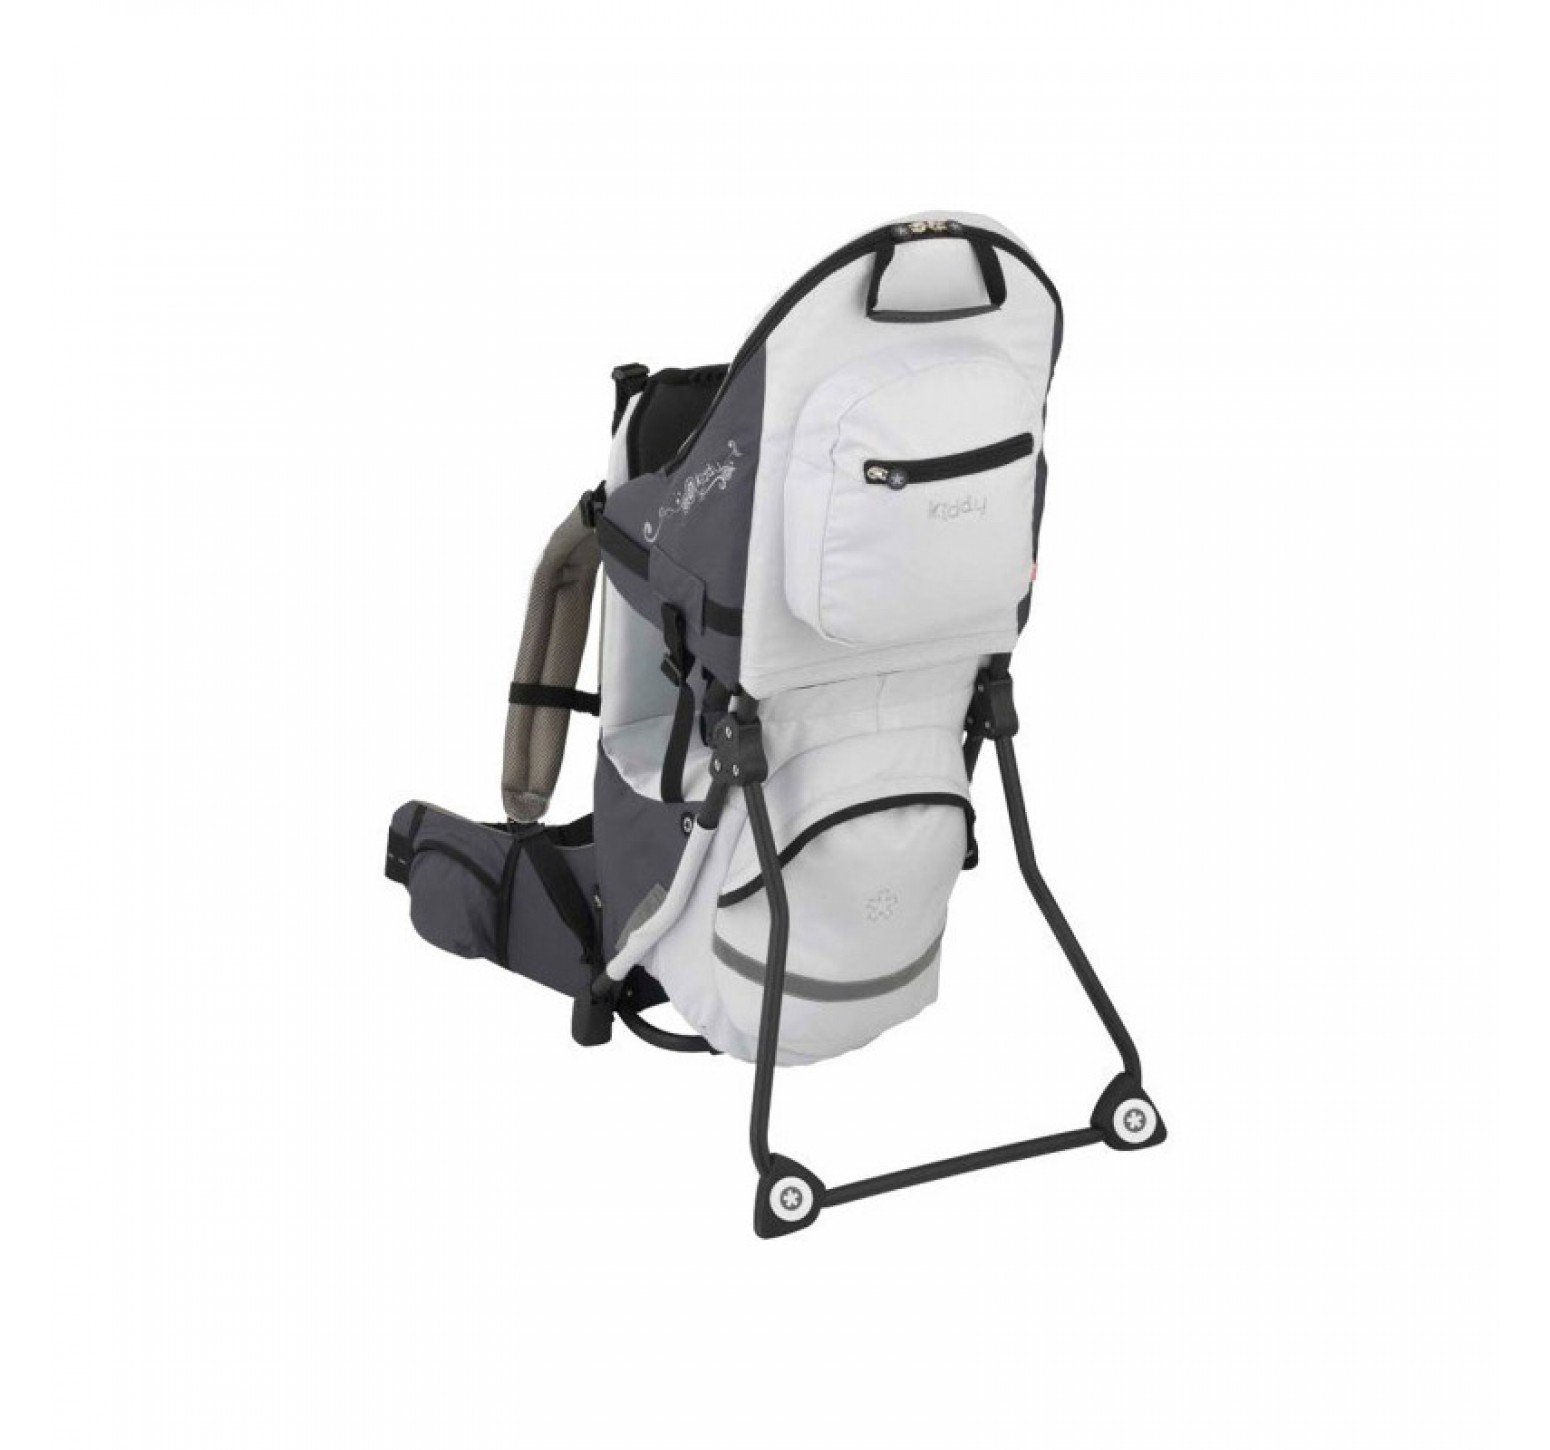 Kiddy Adventure Pack Child Carrier - Mochila trasportadora gris